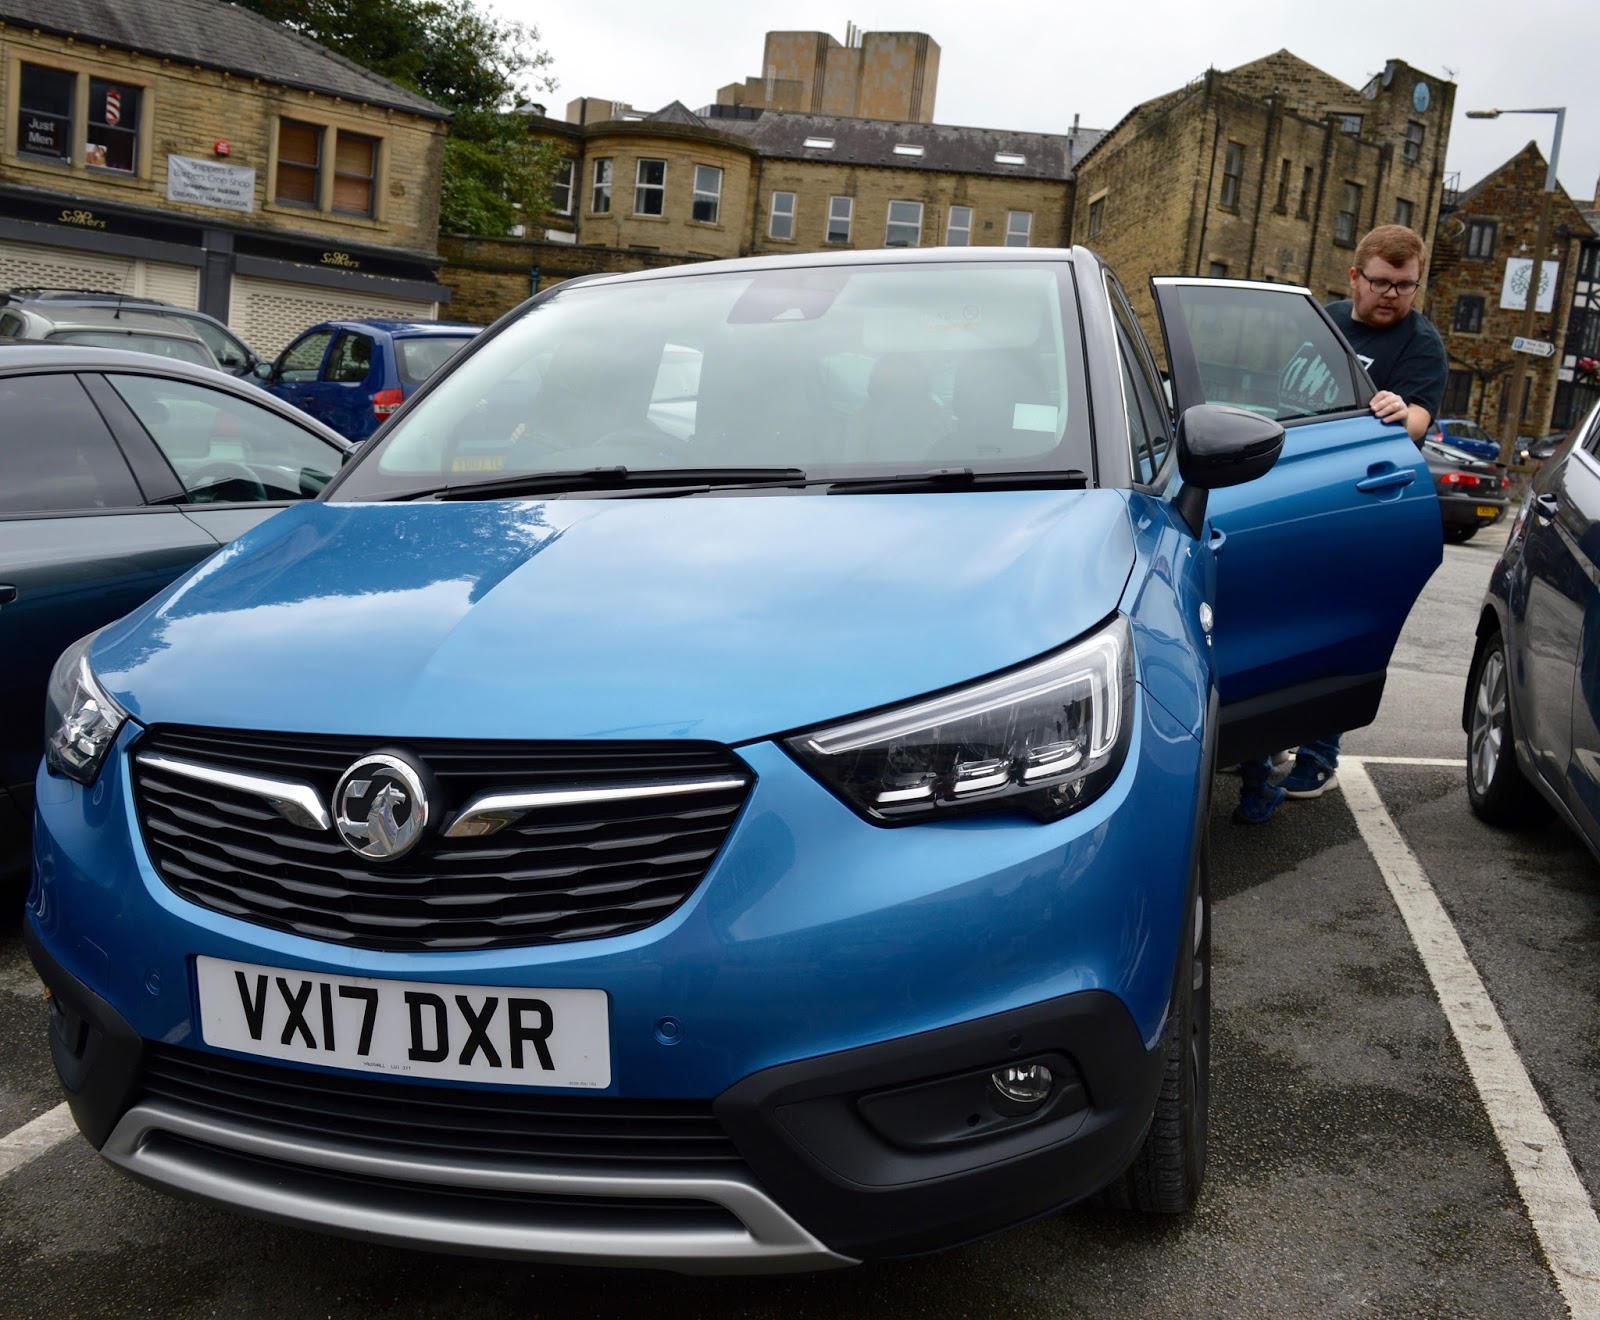 5 Reasons the Vauxhall Crossland X is an ideal car for solo drivers and a good option for a second family car